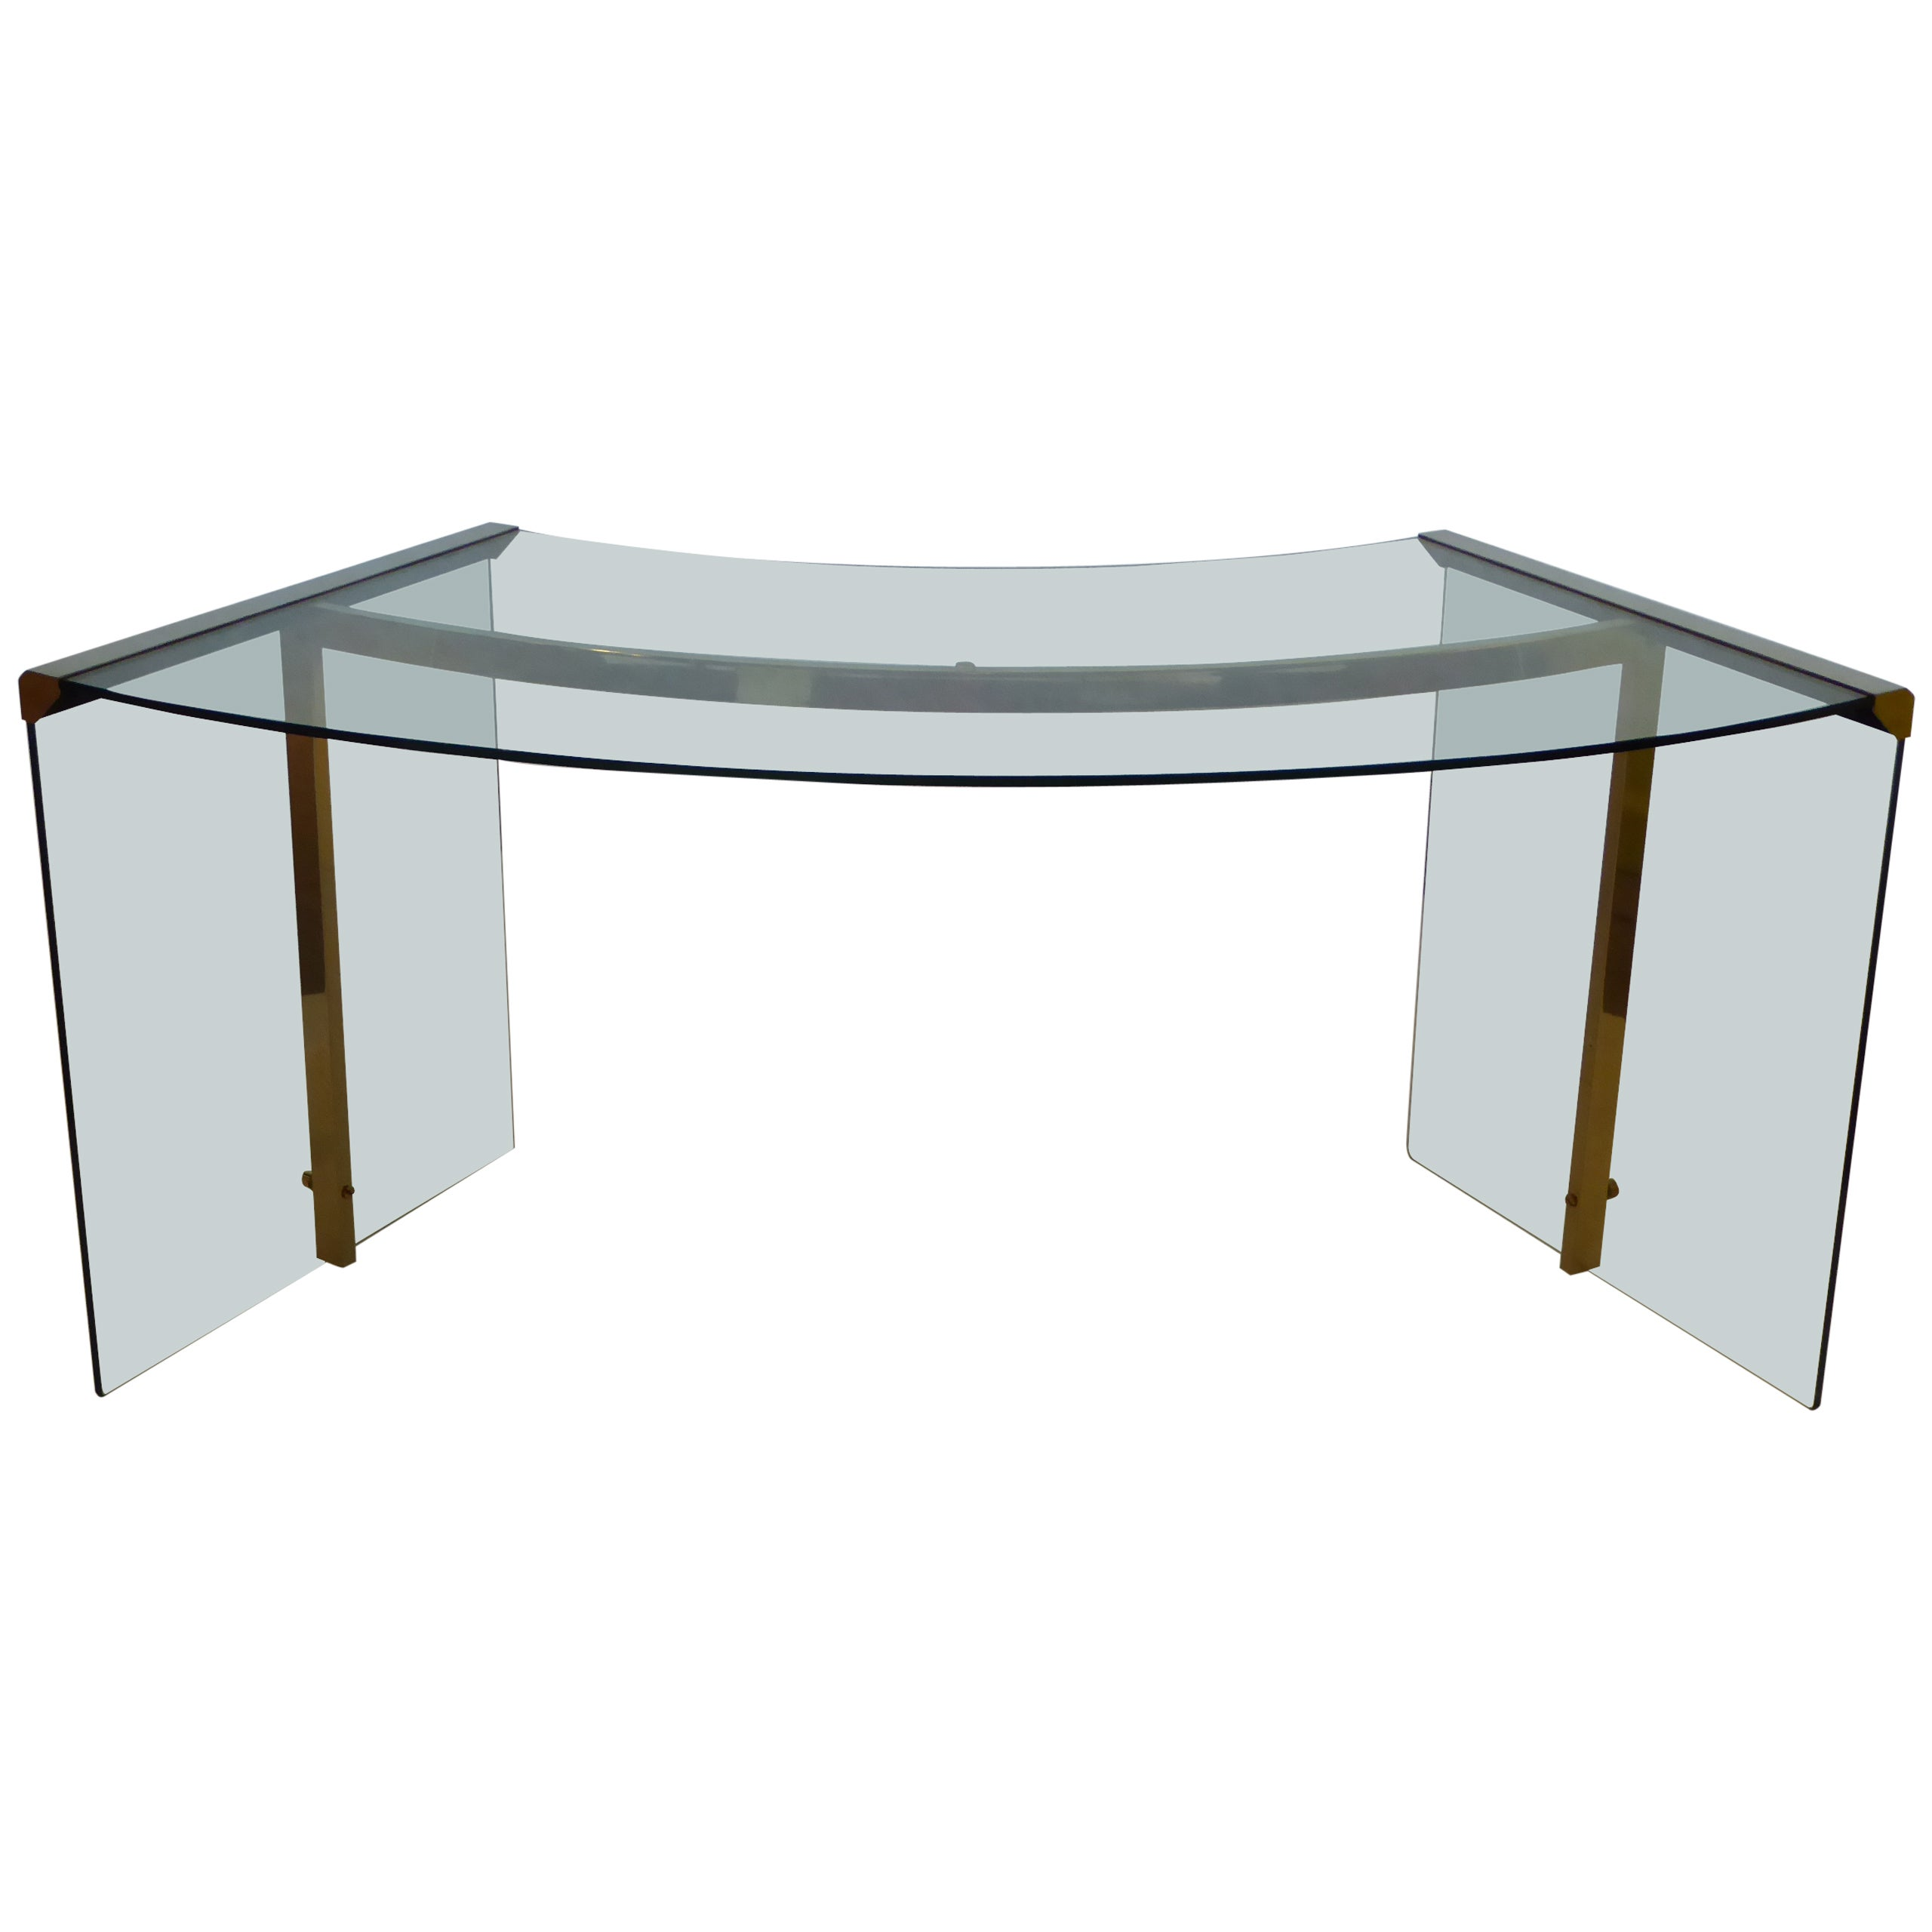 1971 Glass Gallotti and Radice President Desk Italy at 1stdibs